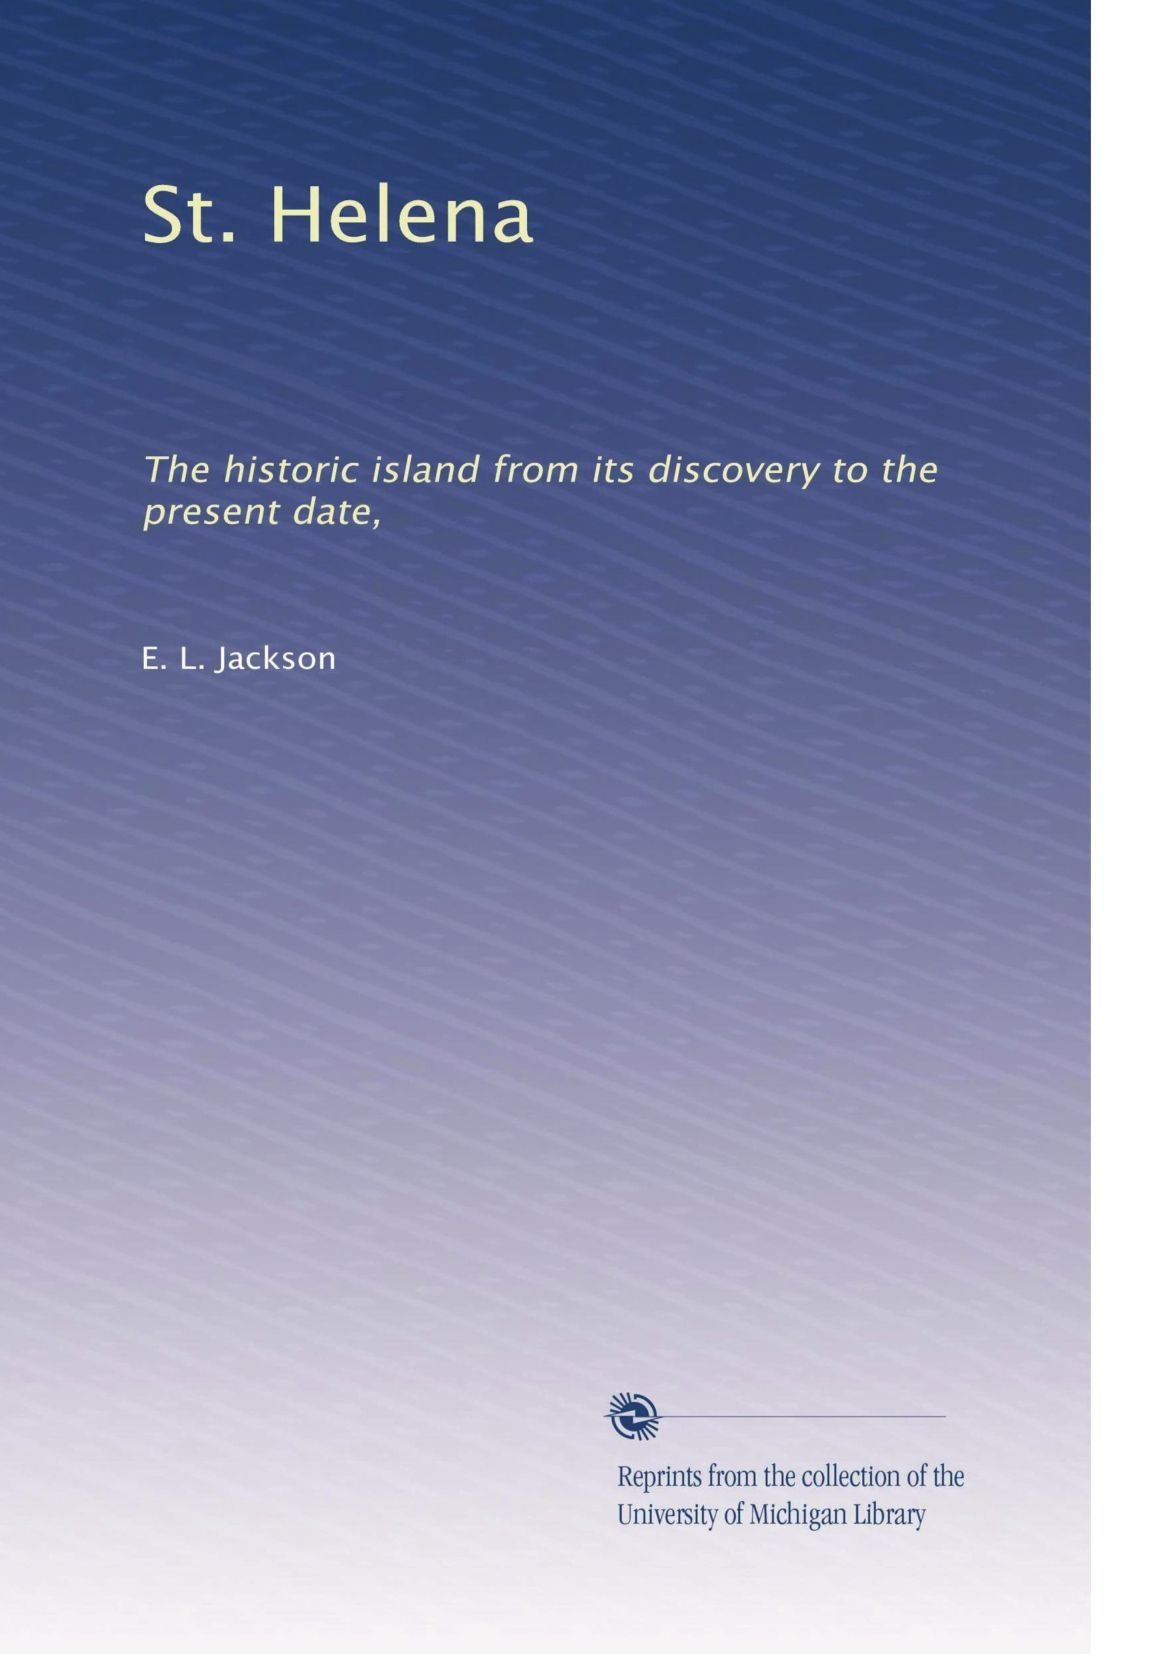 Download St. Helena: The historic island from its discovery to the present date, ebook